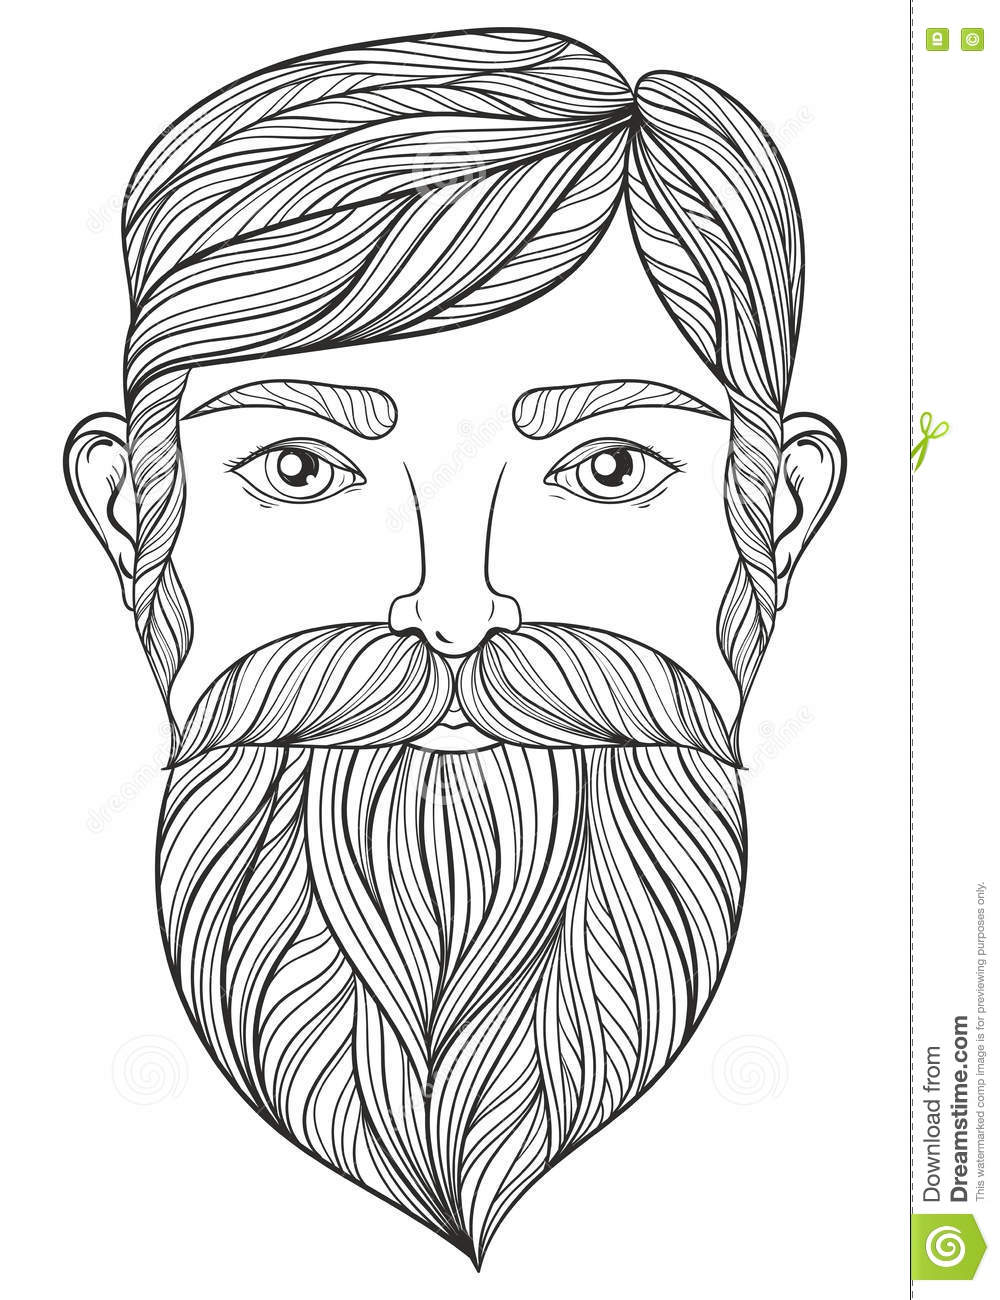 royalty free vector - Mustache Coloring Pages